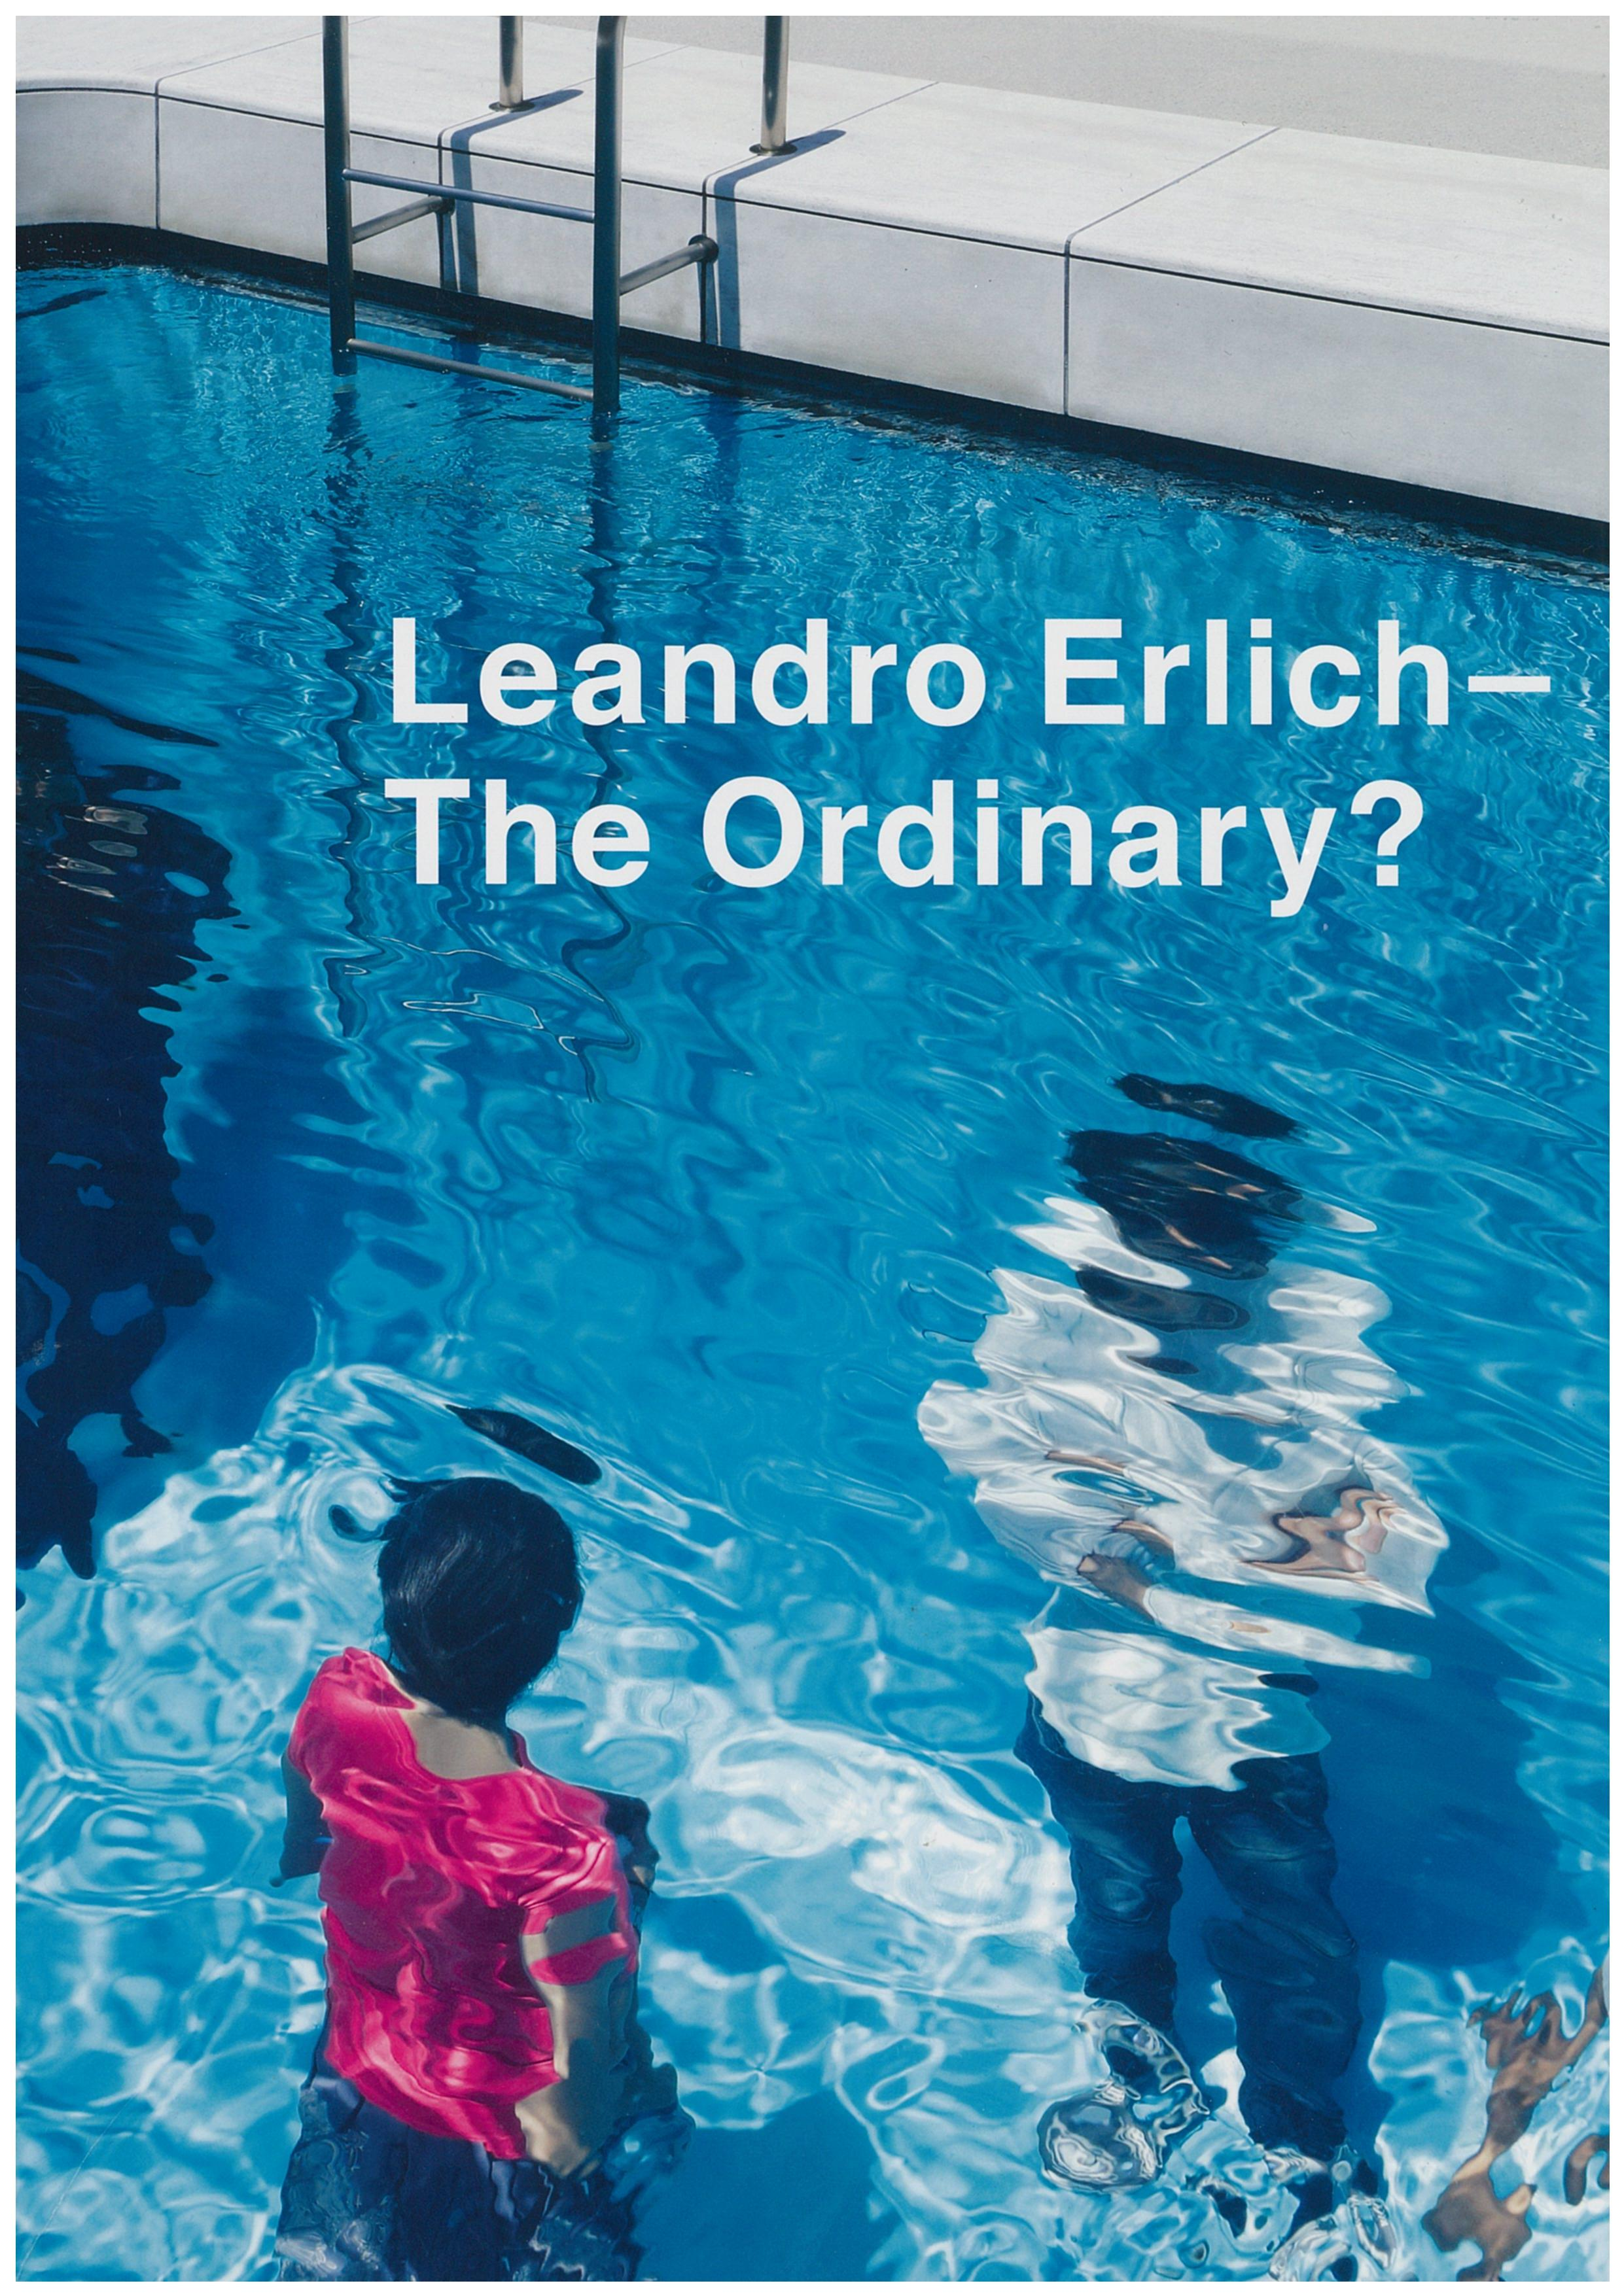 LeandroErlich-The Ordinary?